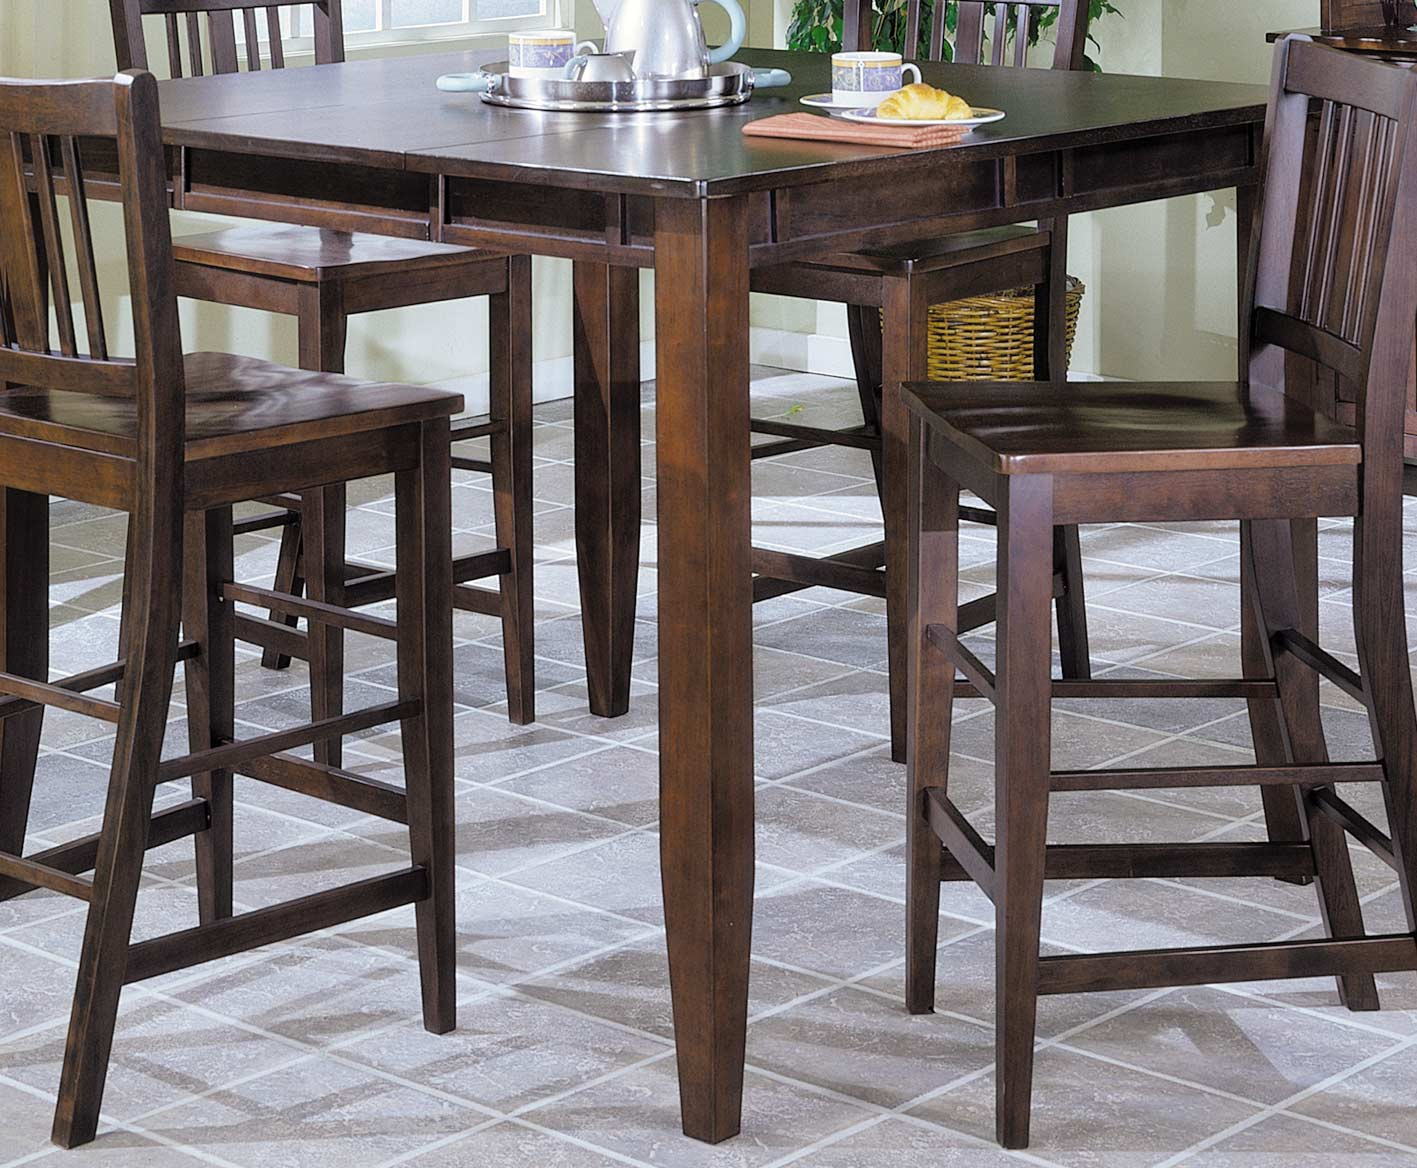 Homelegance Market Square Pub Dining Table wth Butterfly Leaf Extension-Home